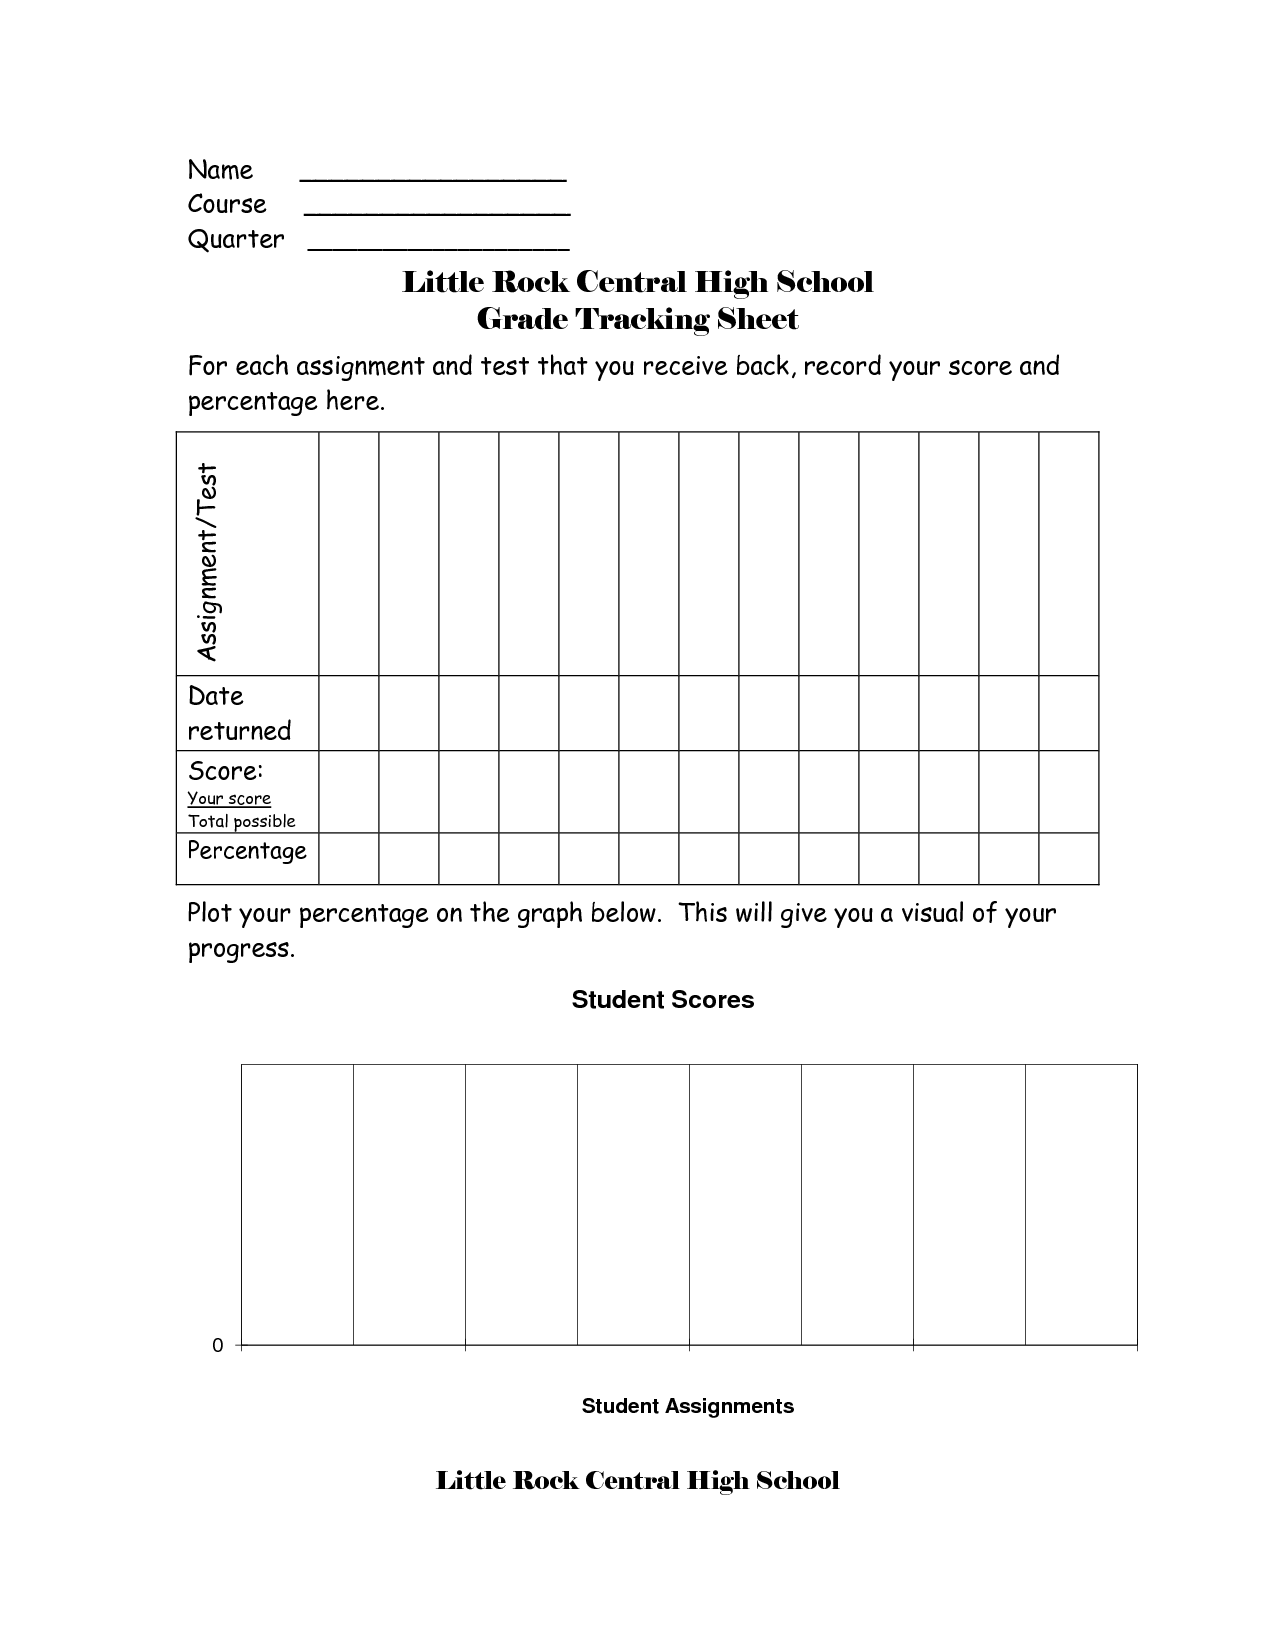 Graphing Student Progress Template